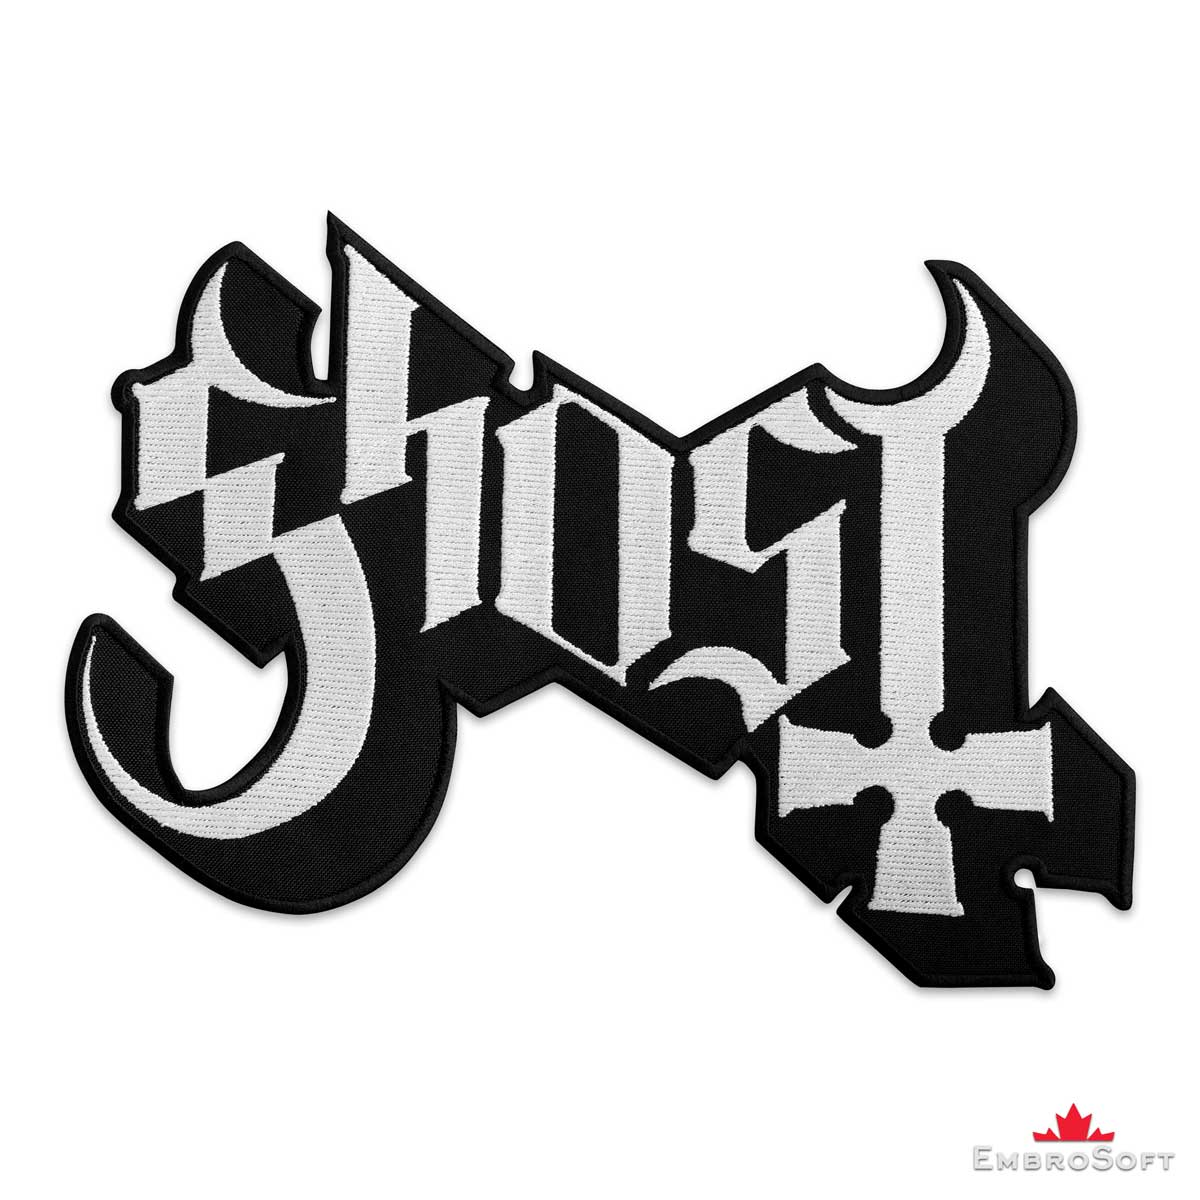 ghost bc logo text